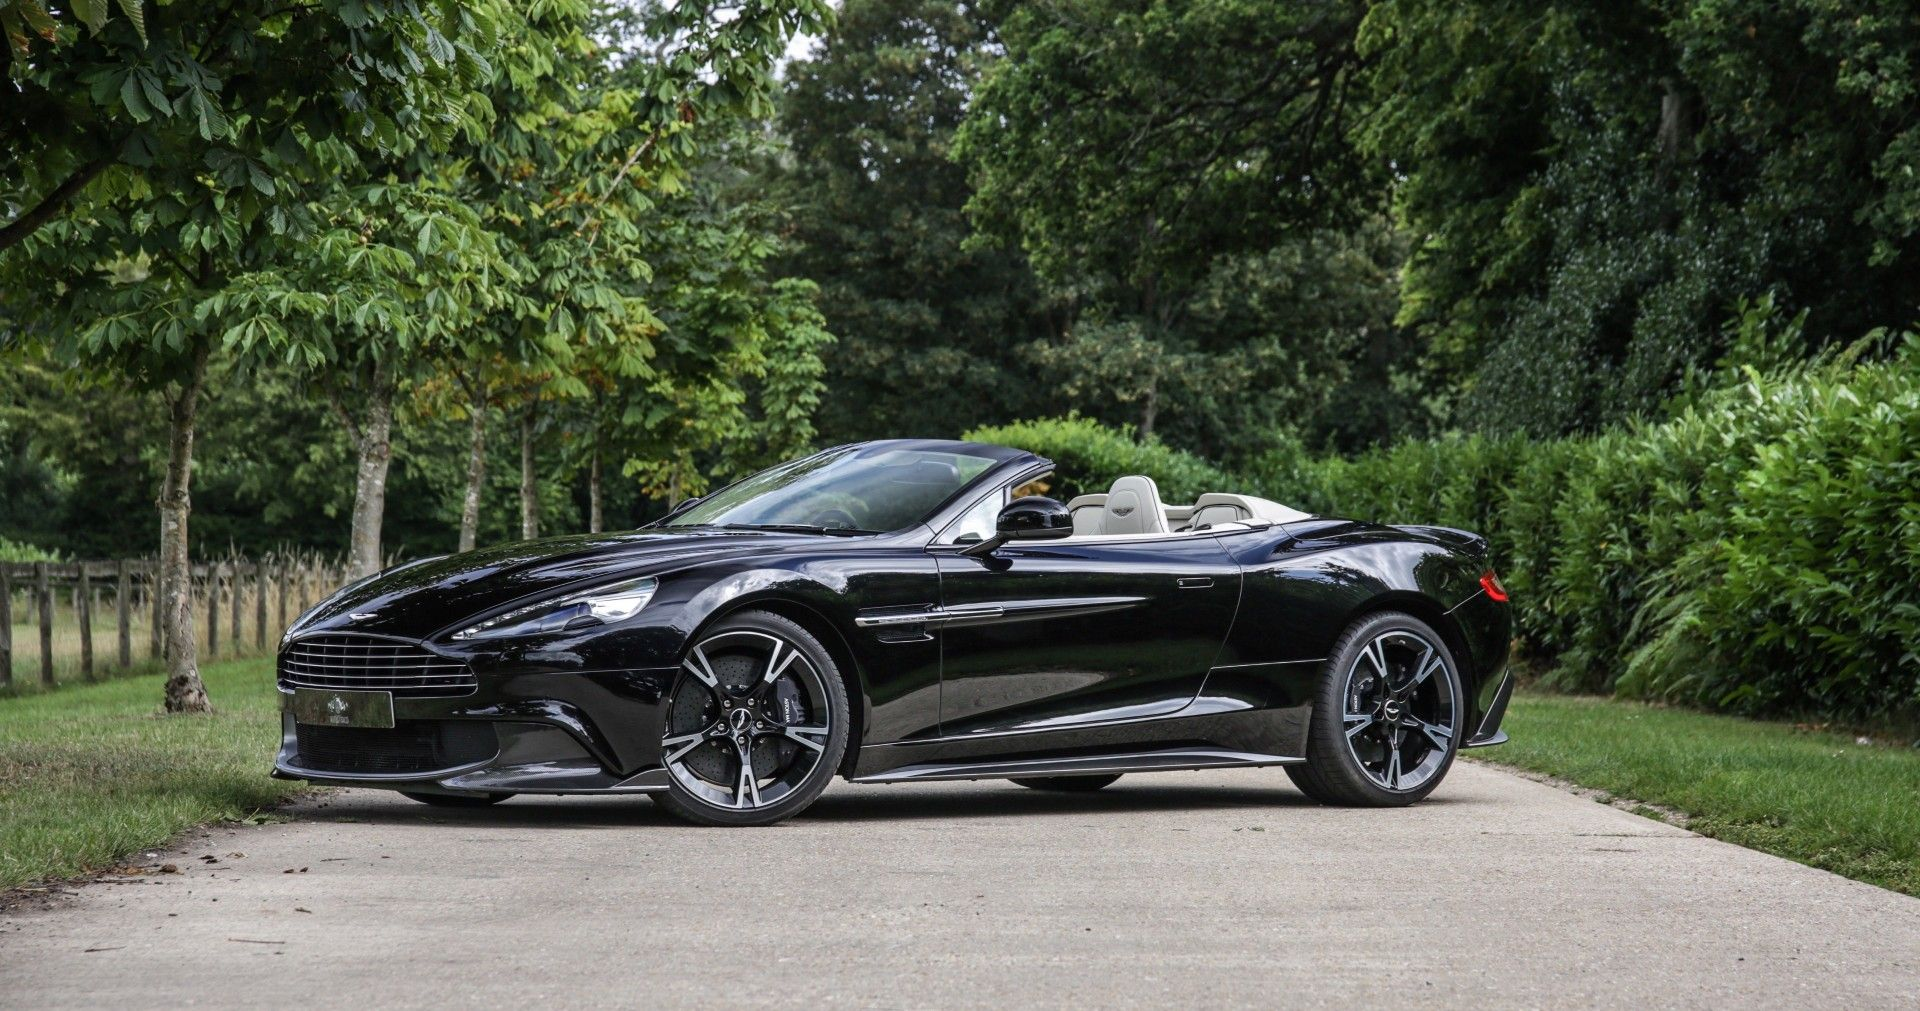 This Is The Sickest Aston Martin Convertible We've Ever Found